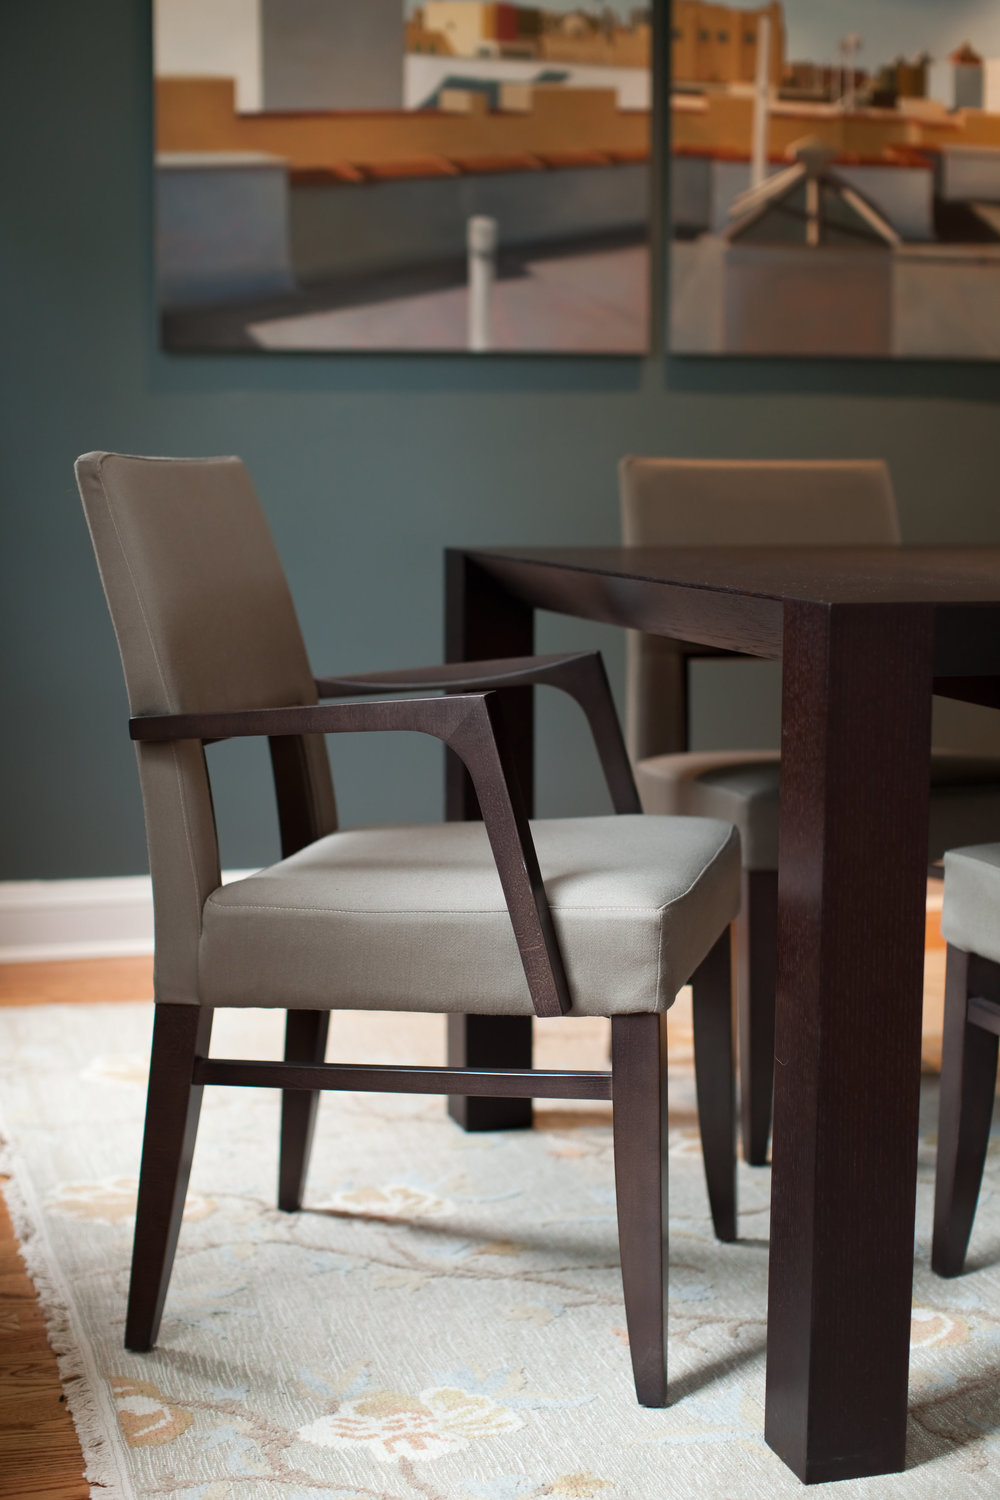 Michelle+Miller+Interiors-Annapolis+Residence+I-0136+-DR+Chair+Detail.jpg